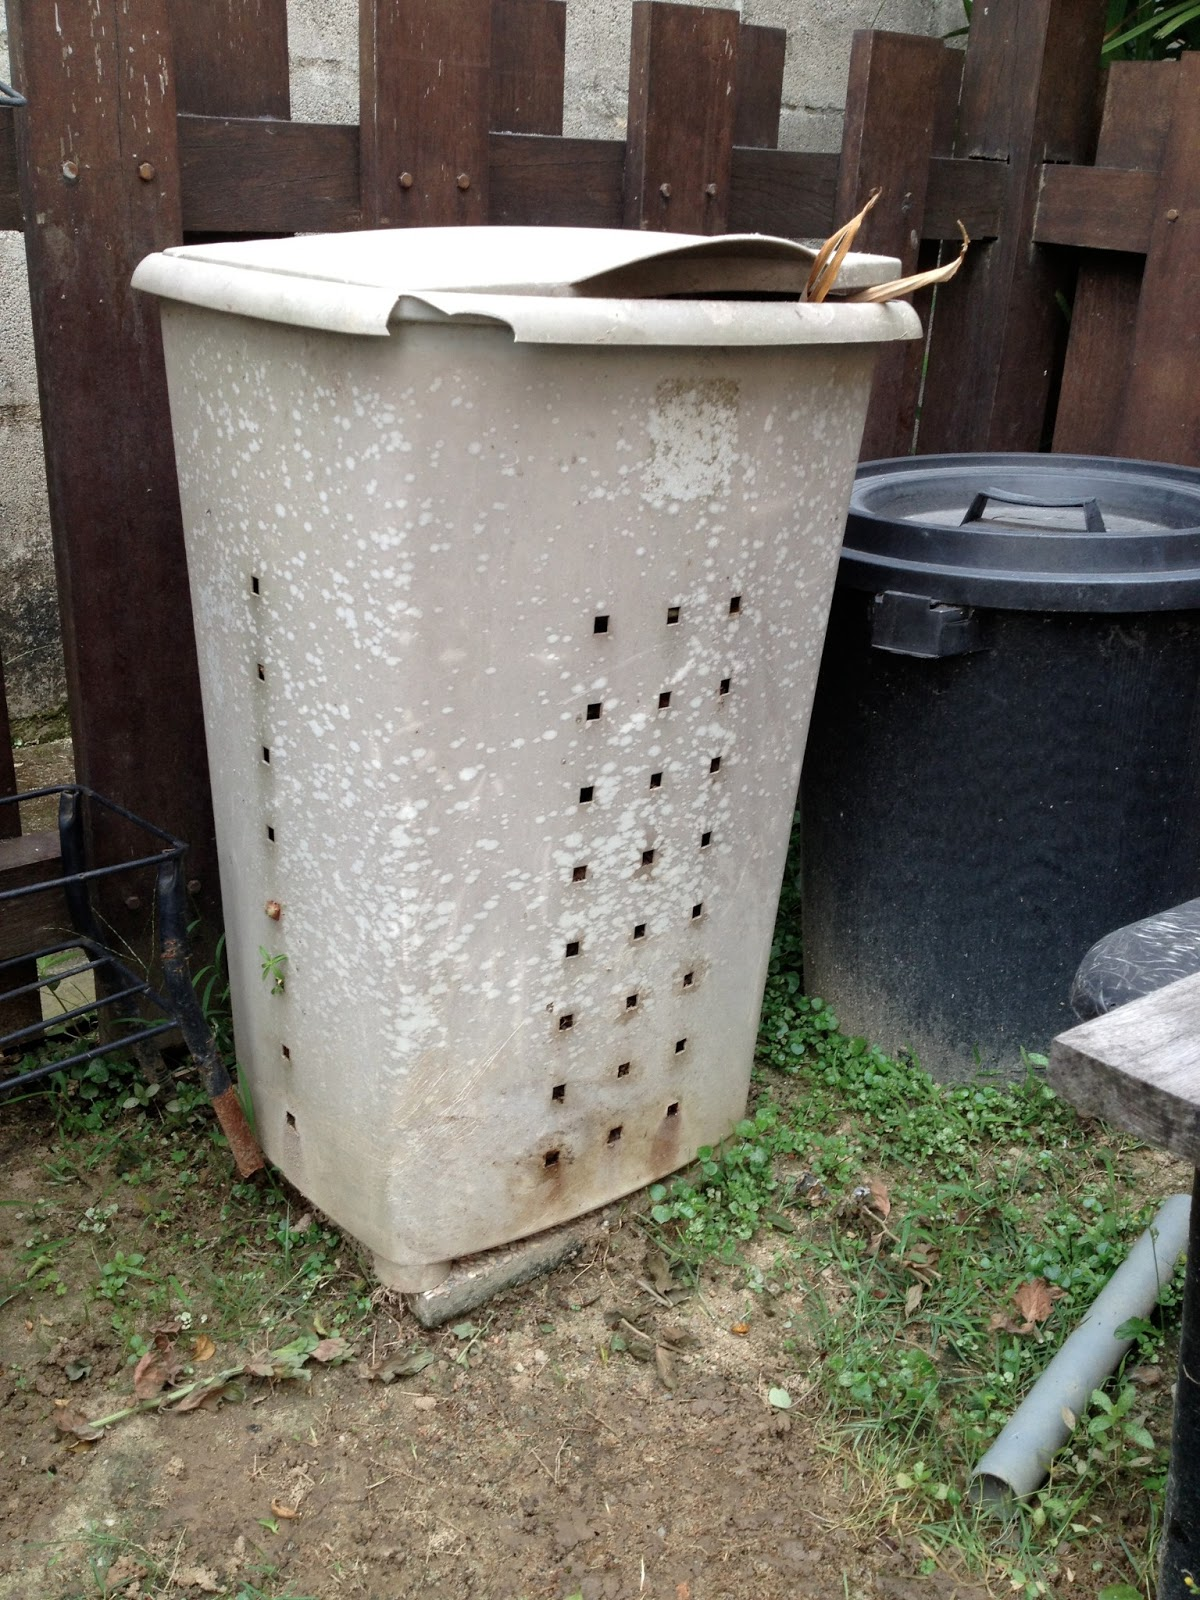 The appealing How to make compost bin for kitchen idaes picture